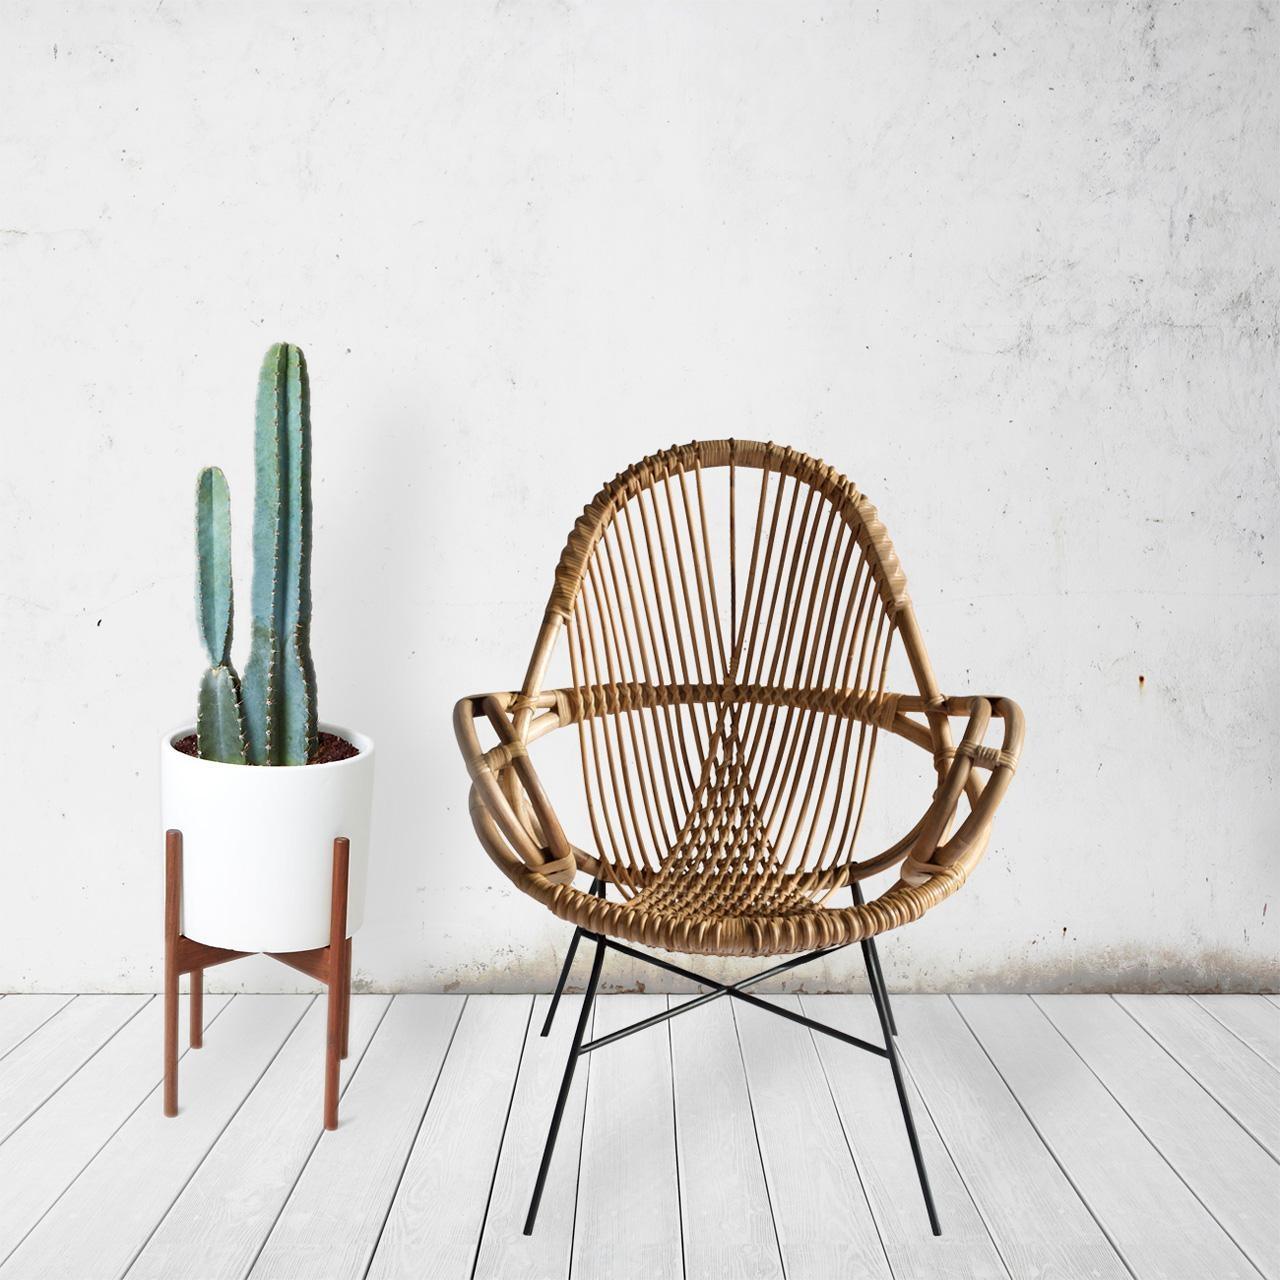 Modern Handwoven Rattan Chairs From Wend – Design Milk With Modern Rattan Sofas (View 3 of 23)